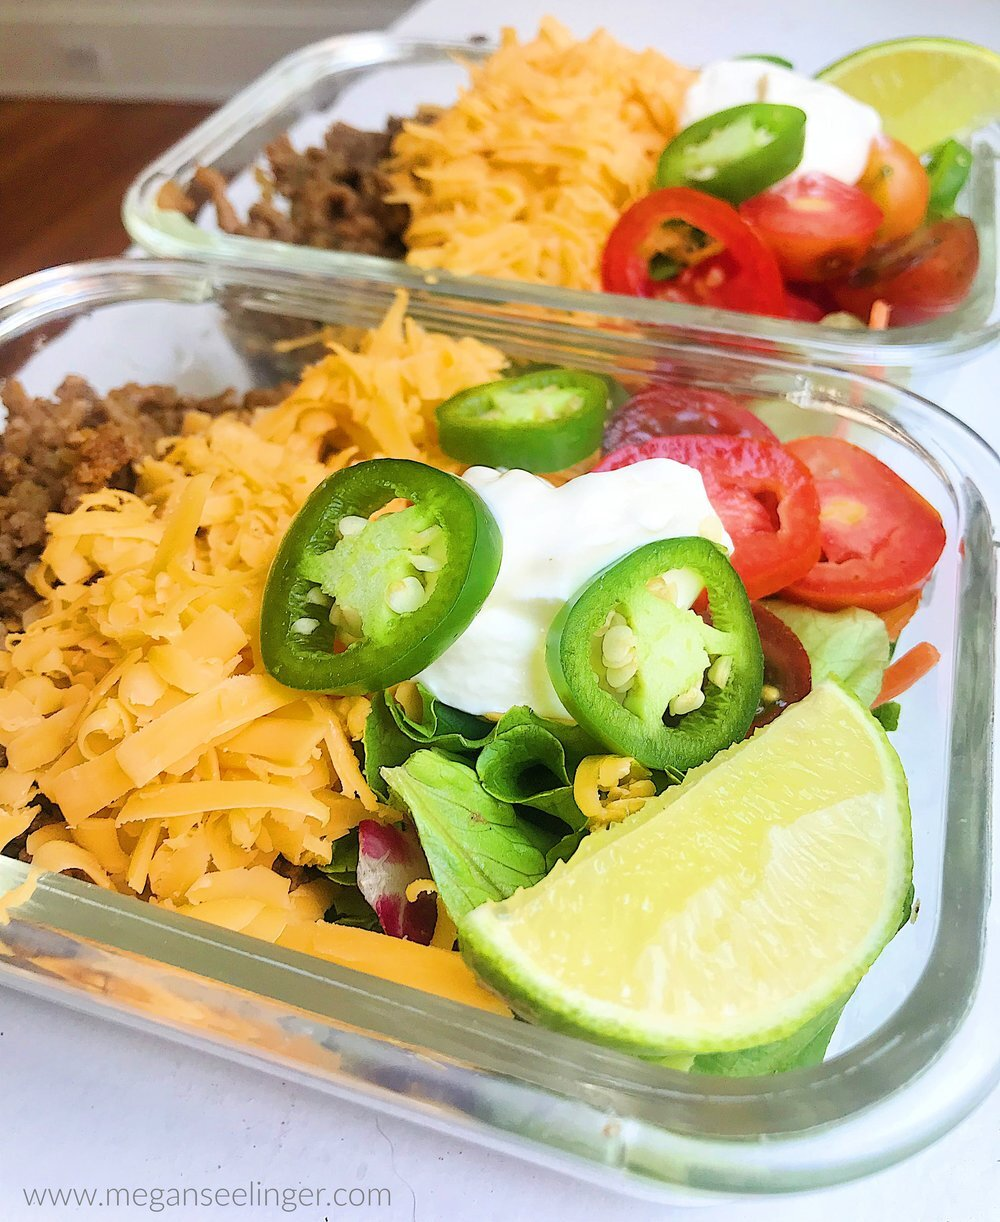 keto lunch meal prep taco salad.jpg